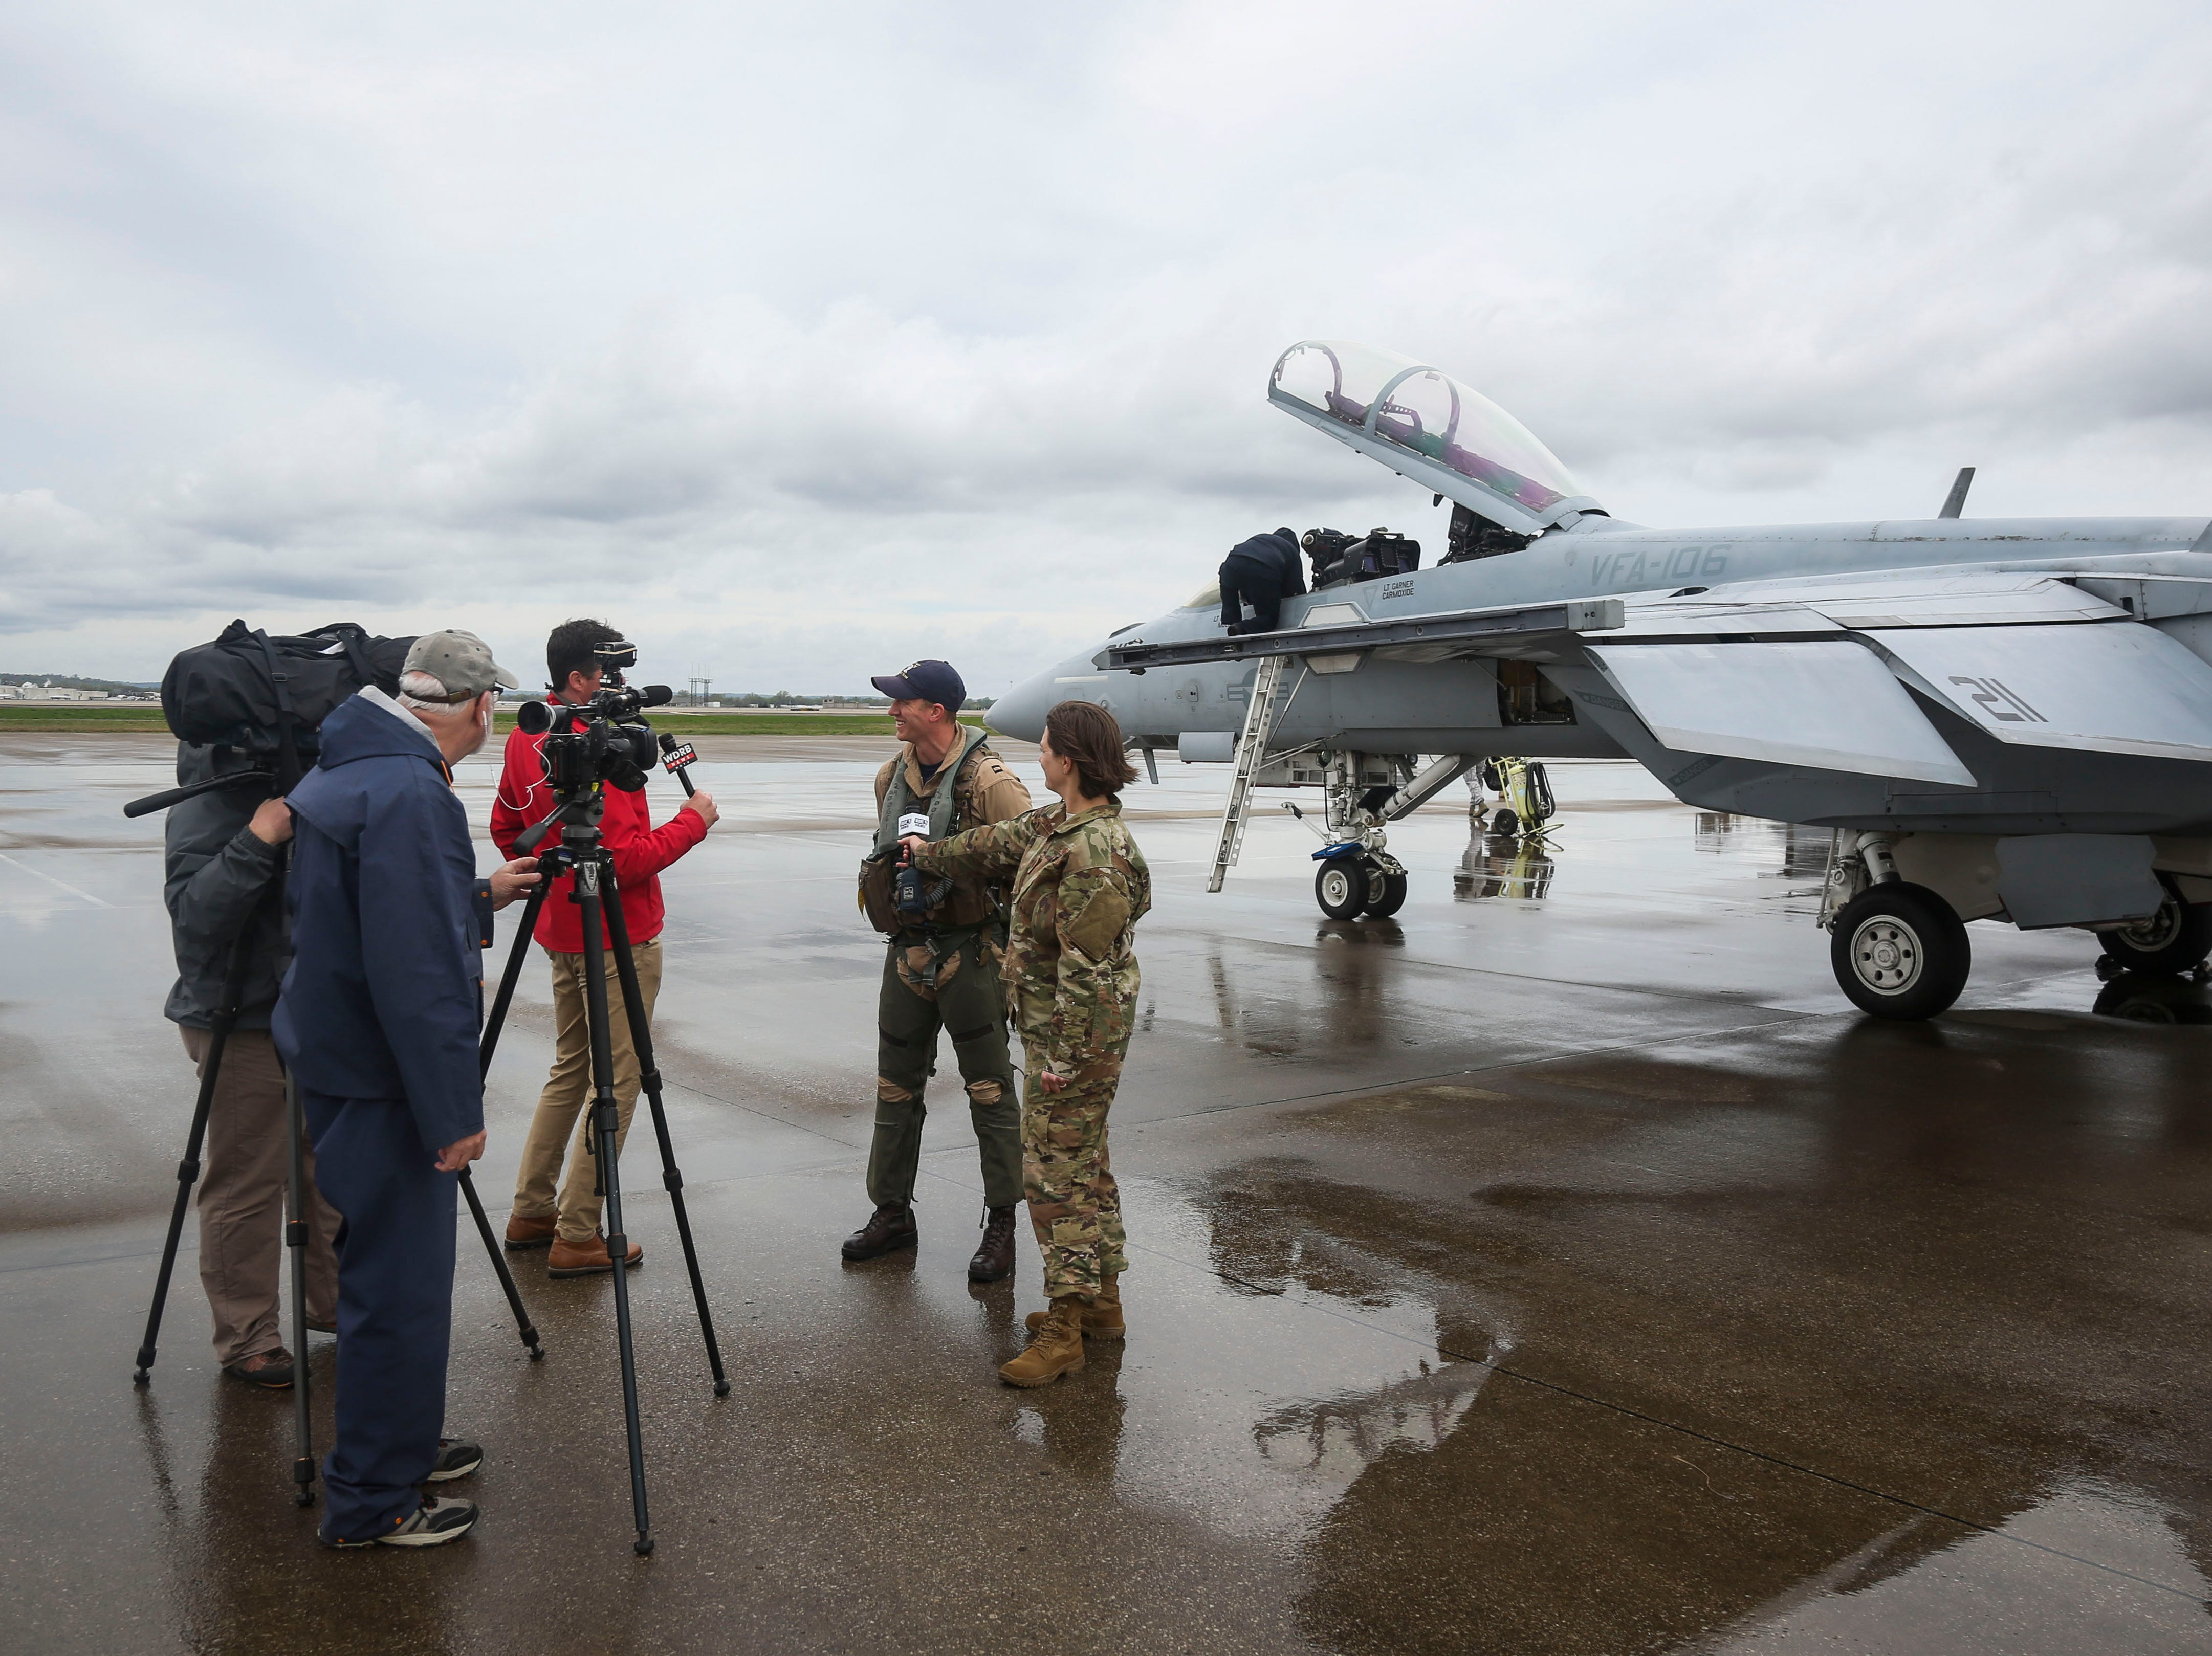 Lt. Jeff Mayer speaks to members of the media after landing a F/A-18 Hornet, a twin-engine, supersonic combat jet, on the runway of the Kentucky Air National Guard ahead of practice for Thunder Over Louisville in Louisville, Ky. on Friday, April 12, 2019.